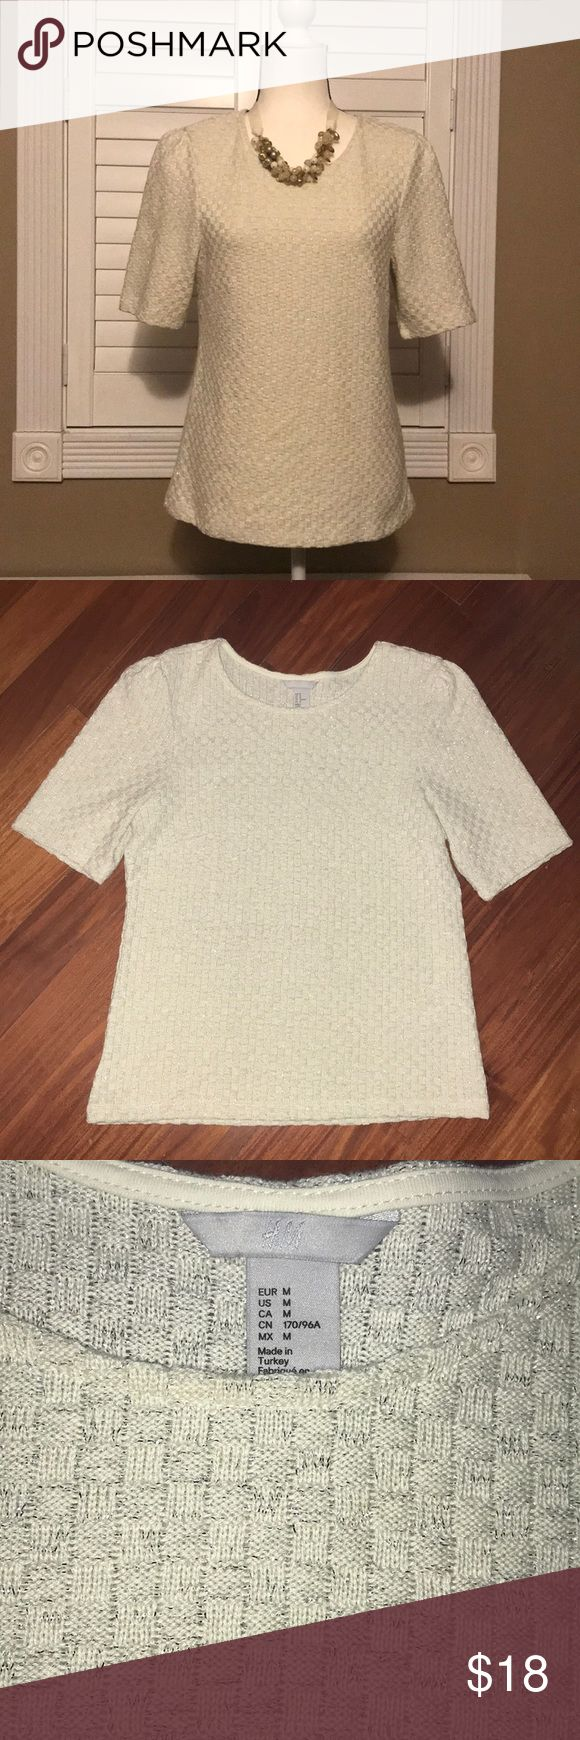 """H&M princess 3/4 sleeve metallic knit woven top Preowned. Worn once, mint condition. H&M. 3/4 princess puff sleeve cream ivory silver metallic knit woven shirt top women's size medium. Approx measurements bust 18"""" and length 24"""". H&M Tops Tees - Short Sleeve"""